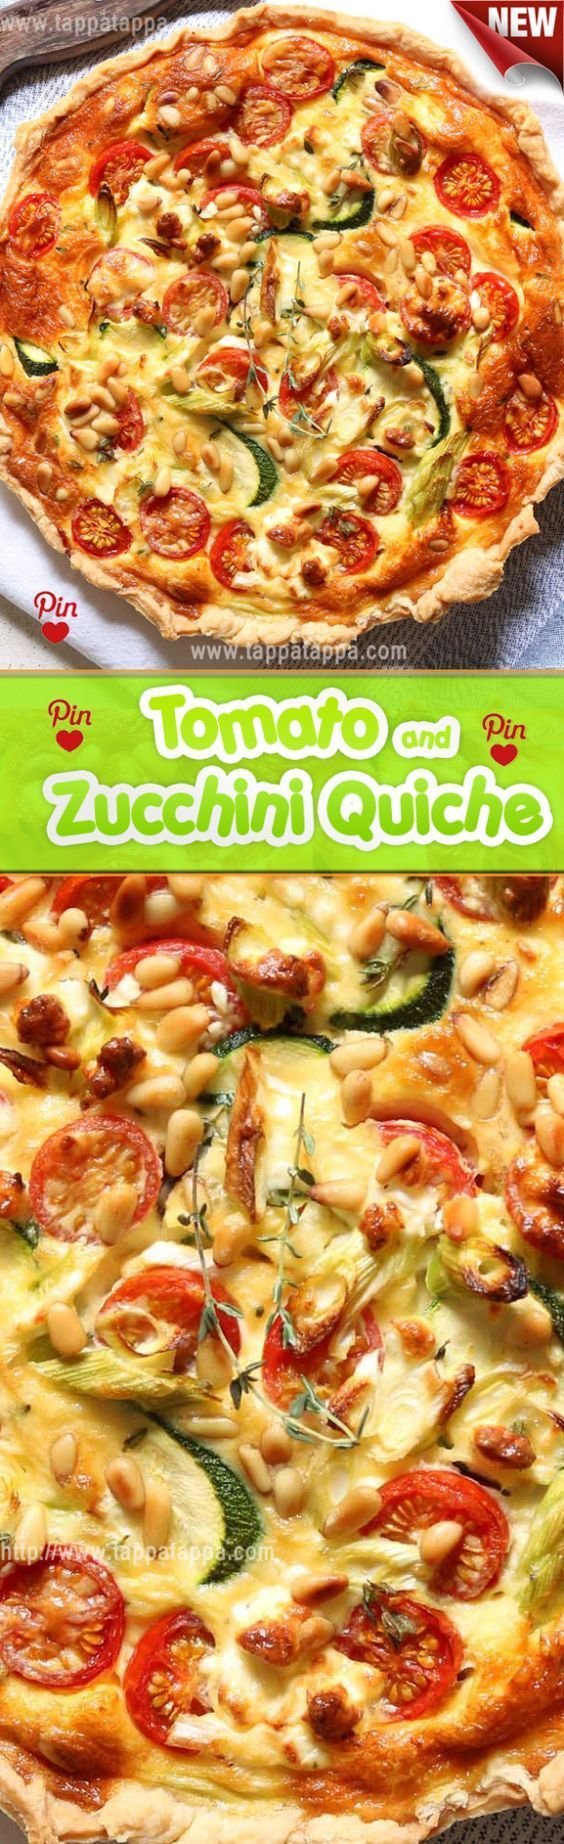 Tomato and Zucchini Quiche Its simple like enough as quiches goshallots shredded zucchini an assortment of colorful cherry tomatoes basil and herbs with a custard base of...